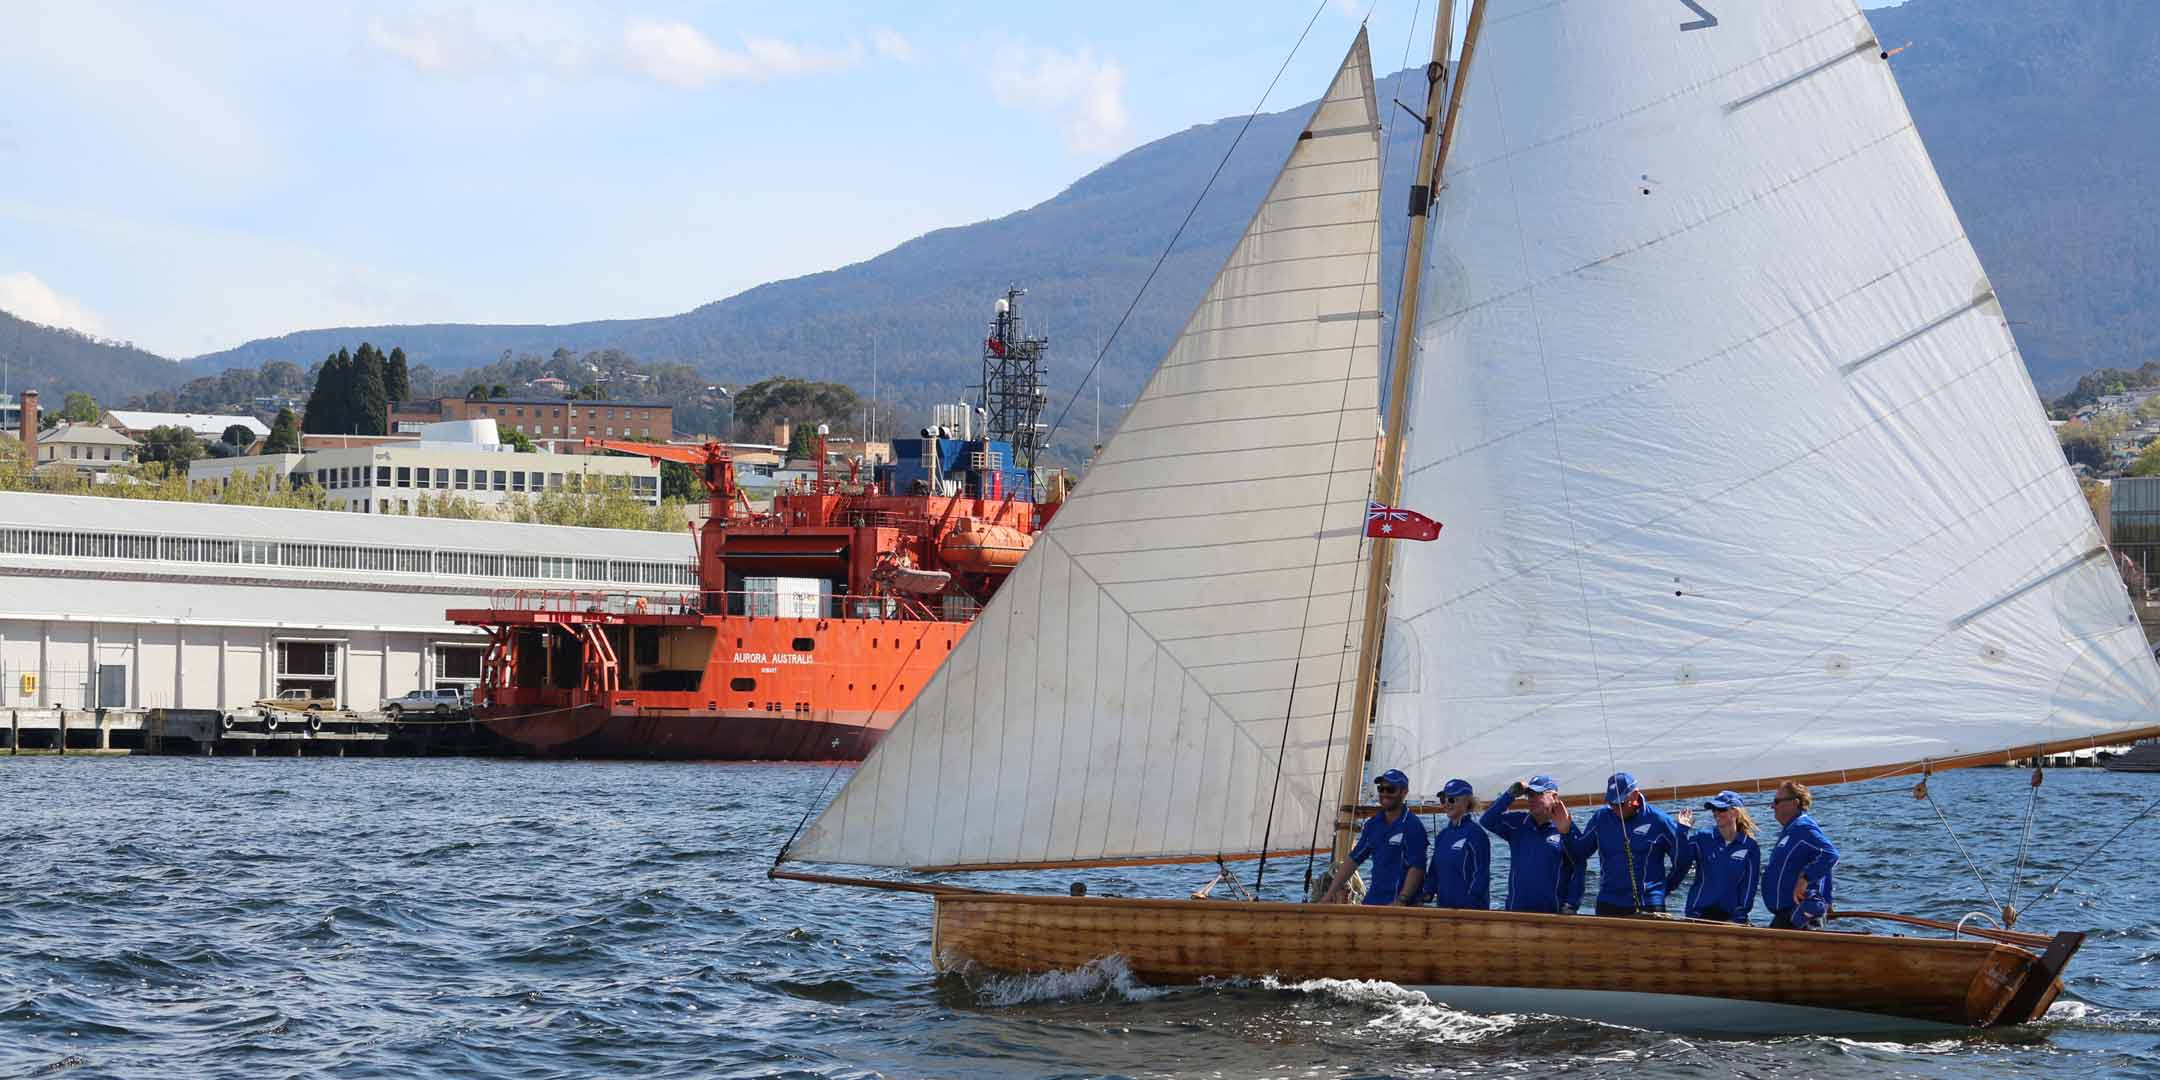 Restricted 21-Foot Class Racing Yacht, Tasmania